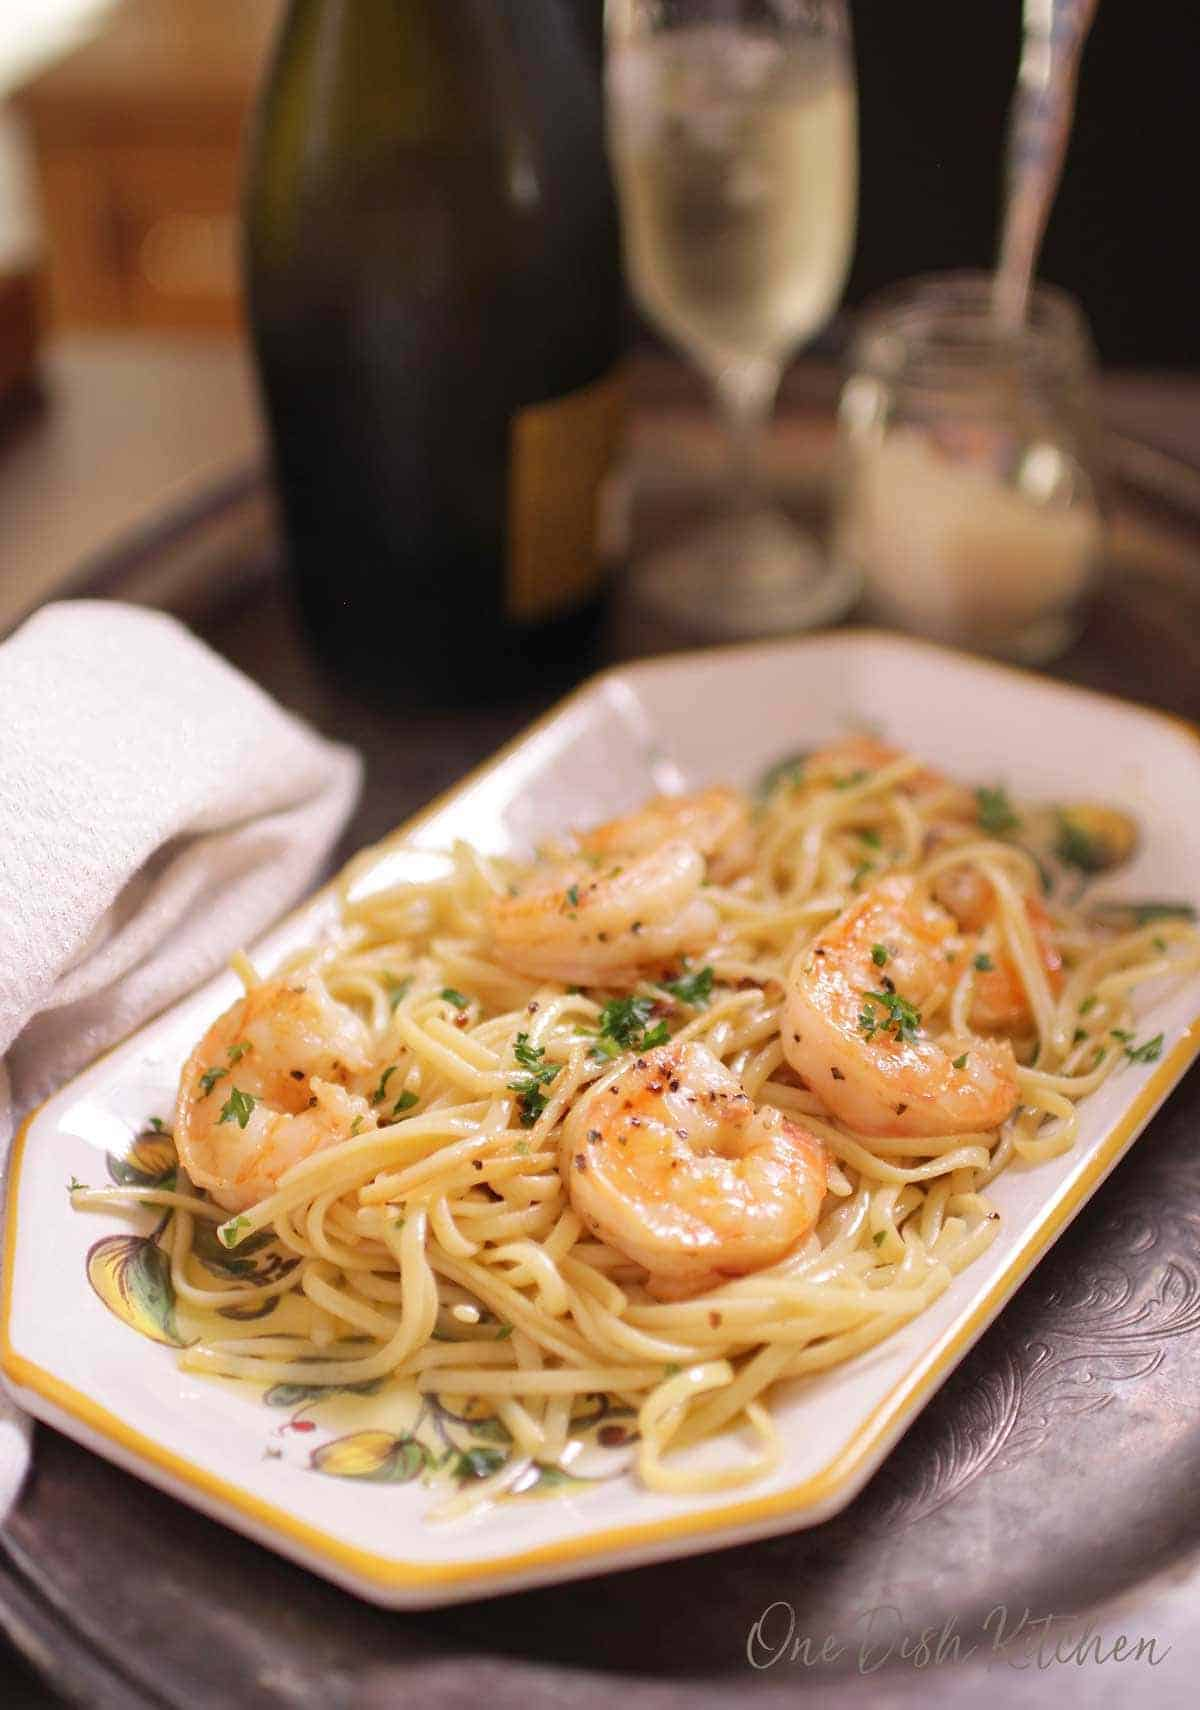 A plate of spaghetti with shrimp on a tray next to a small jar of parmesan cheese and a glass of champagne.